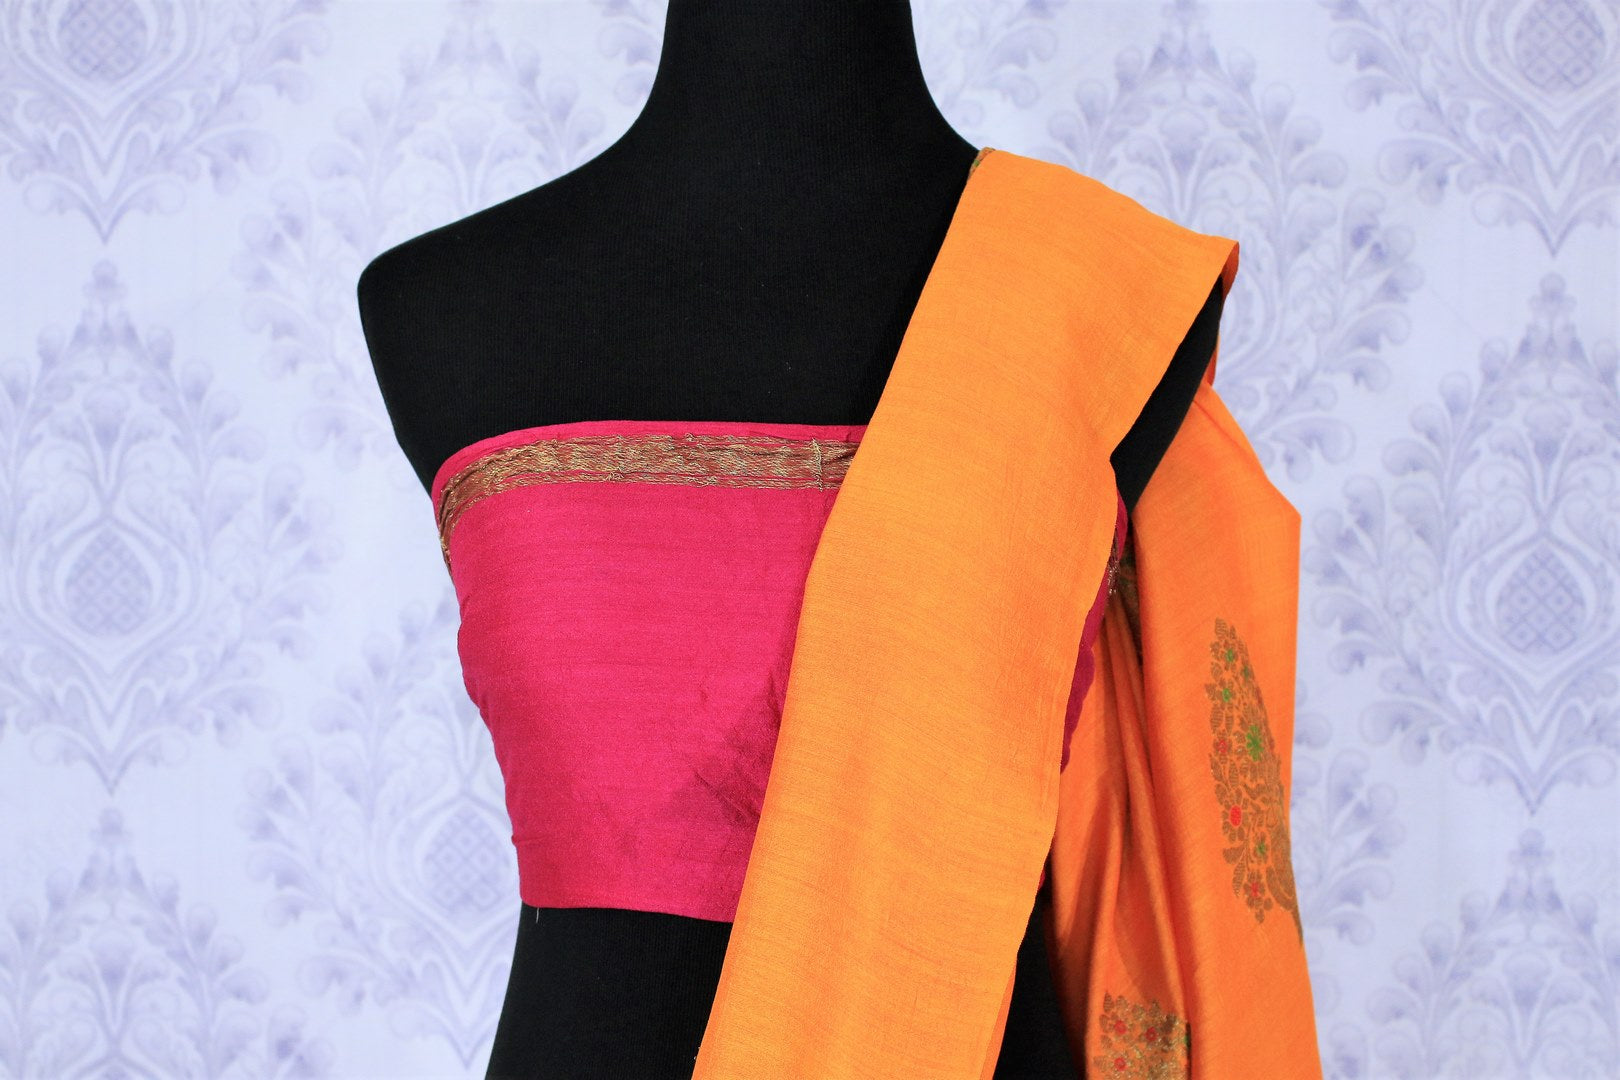 Escalate your style game with this exquisitely designed orange embroidered muga banarsi silk sari. Pair this stunning saree with pink raw silk and embroidered blouse complemented with purple border and embroidery. Shop designer silk sarees, printed saris, banarsi saris online or visit Pure Elegance store in USA. -blouse pallu